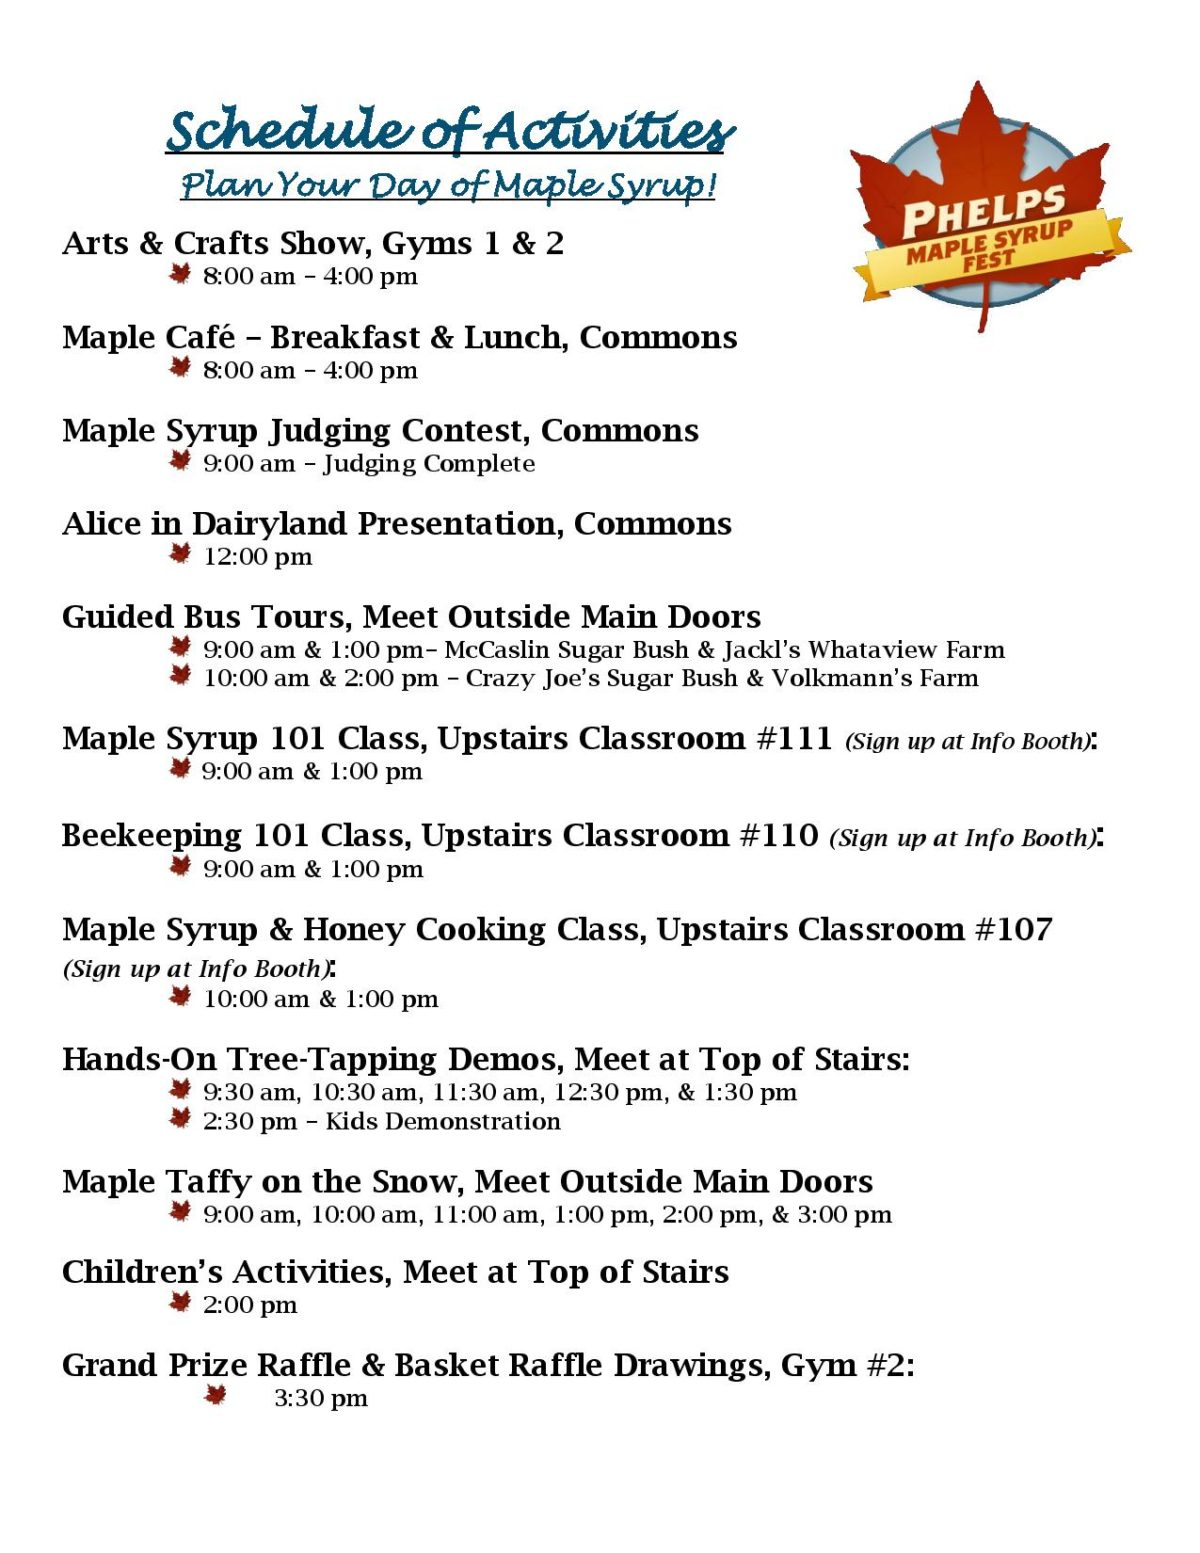 Phelps Maple Syrup Fest Schedule